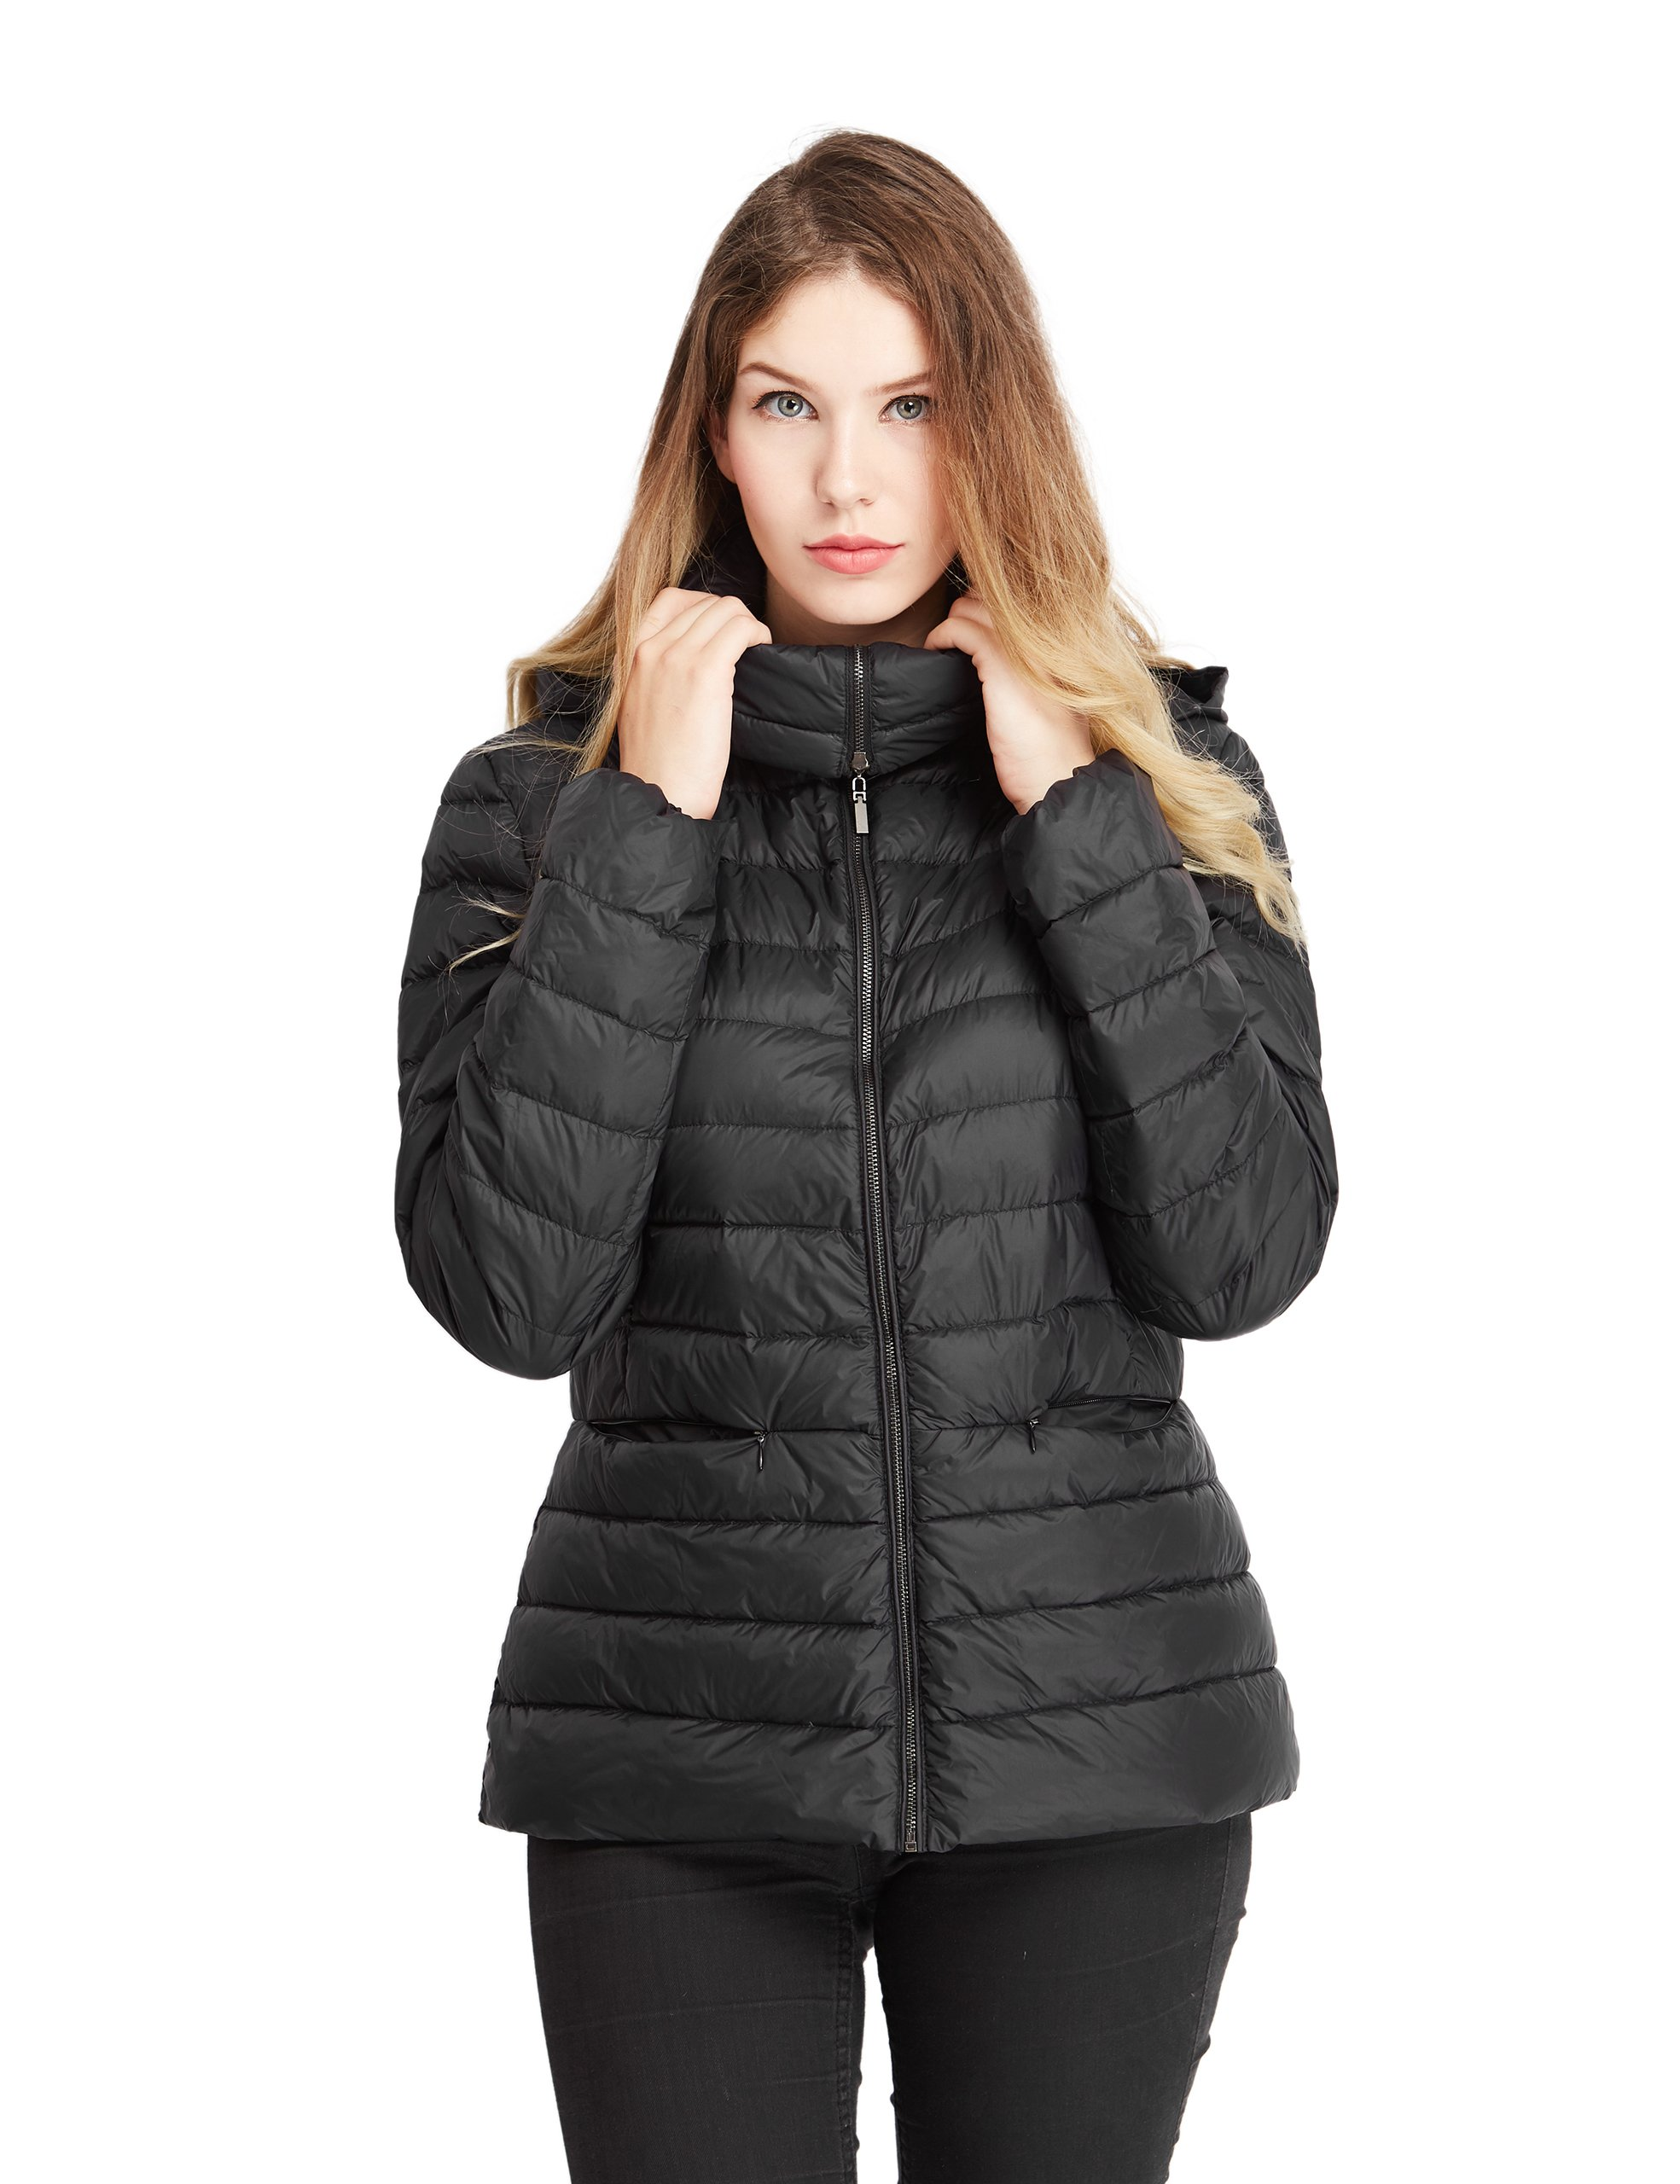 Lotus Dew Women's Down Jacket Packable Quilted Coat Zipper Hood Pockets